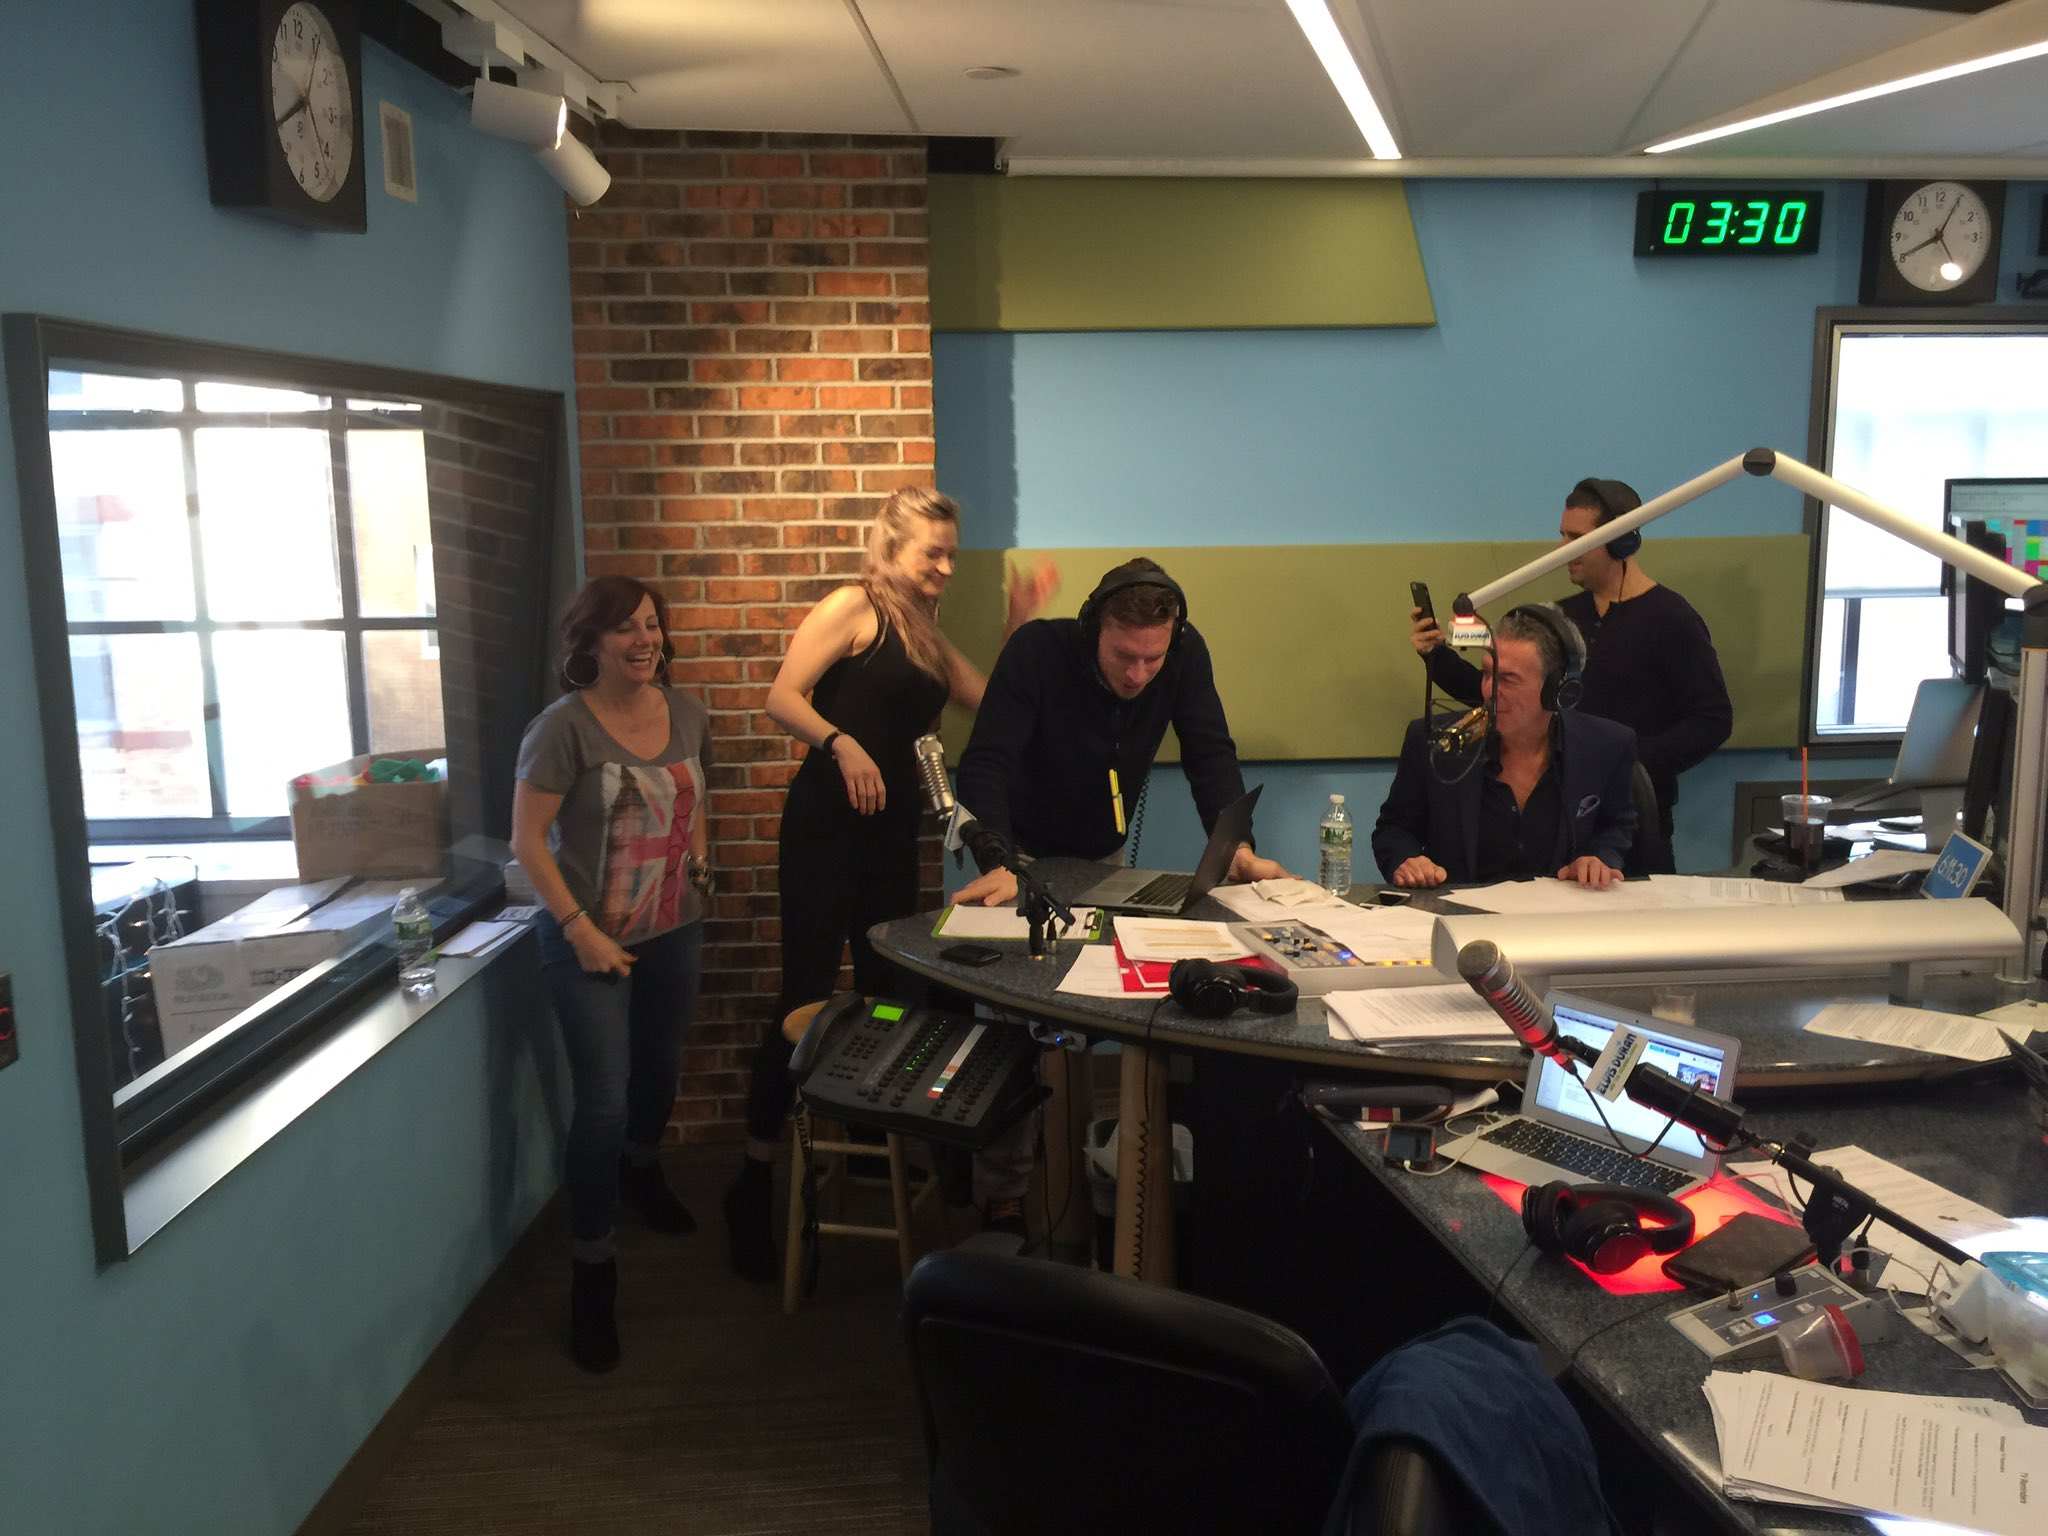 Blue apron elvis duran - Elvis Duran On Twitter Spank A Producer Day Or As We Like To Call It Around Here Wednesday Https T Co 1nipdkahxv